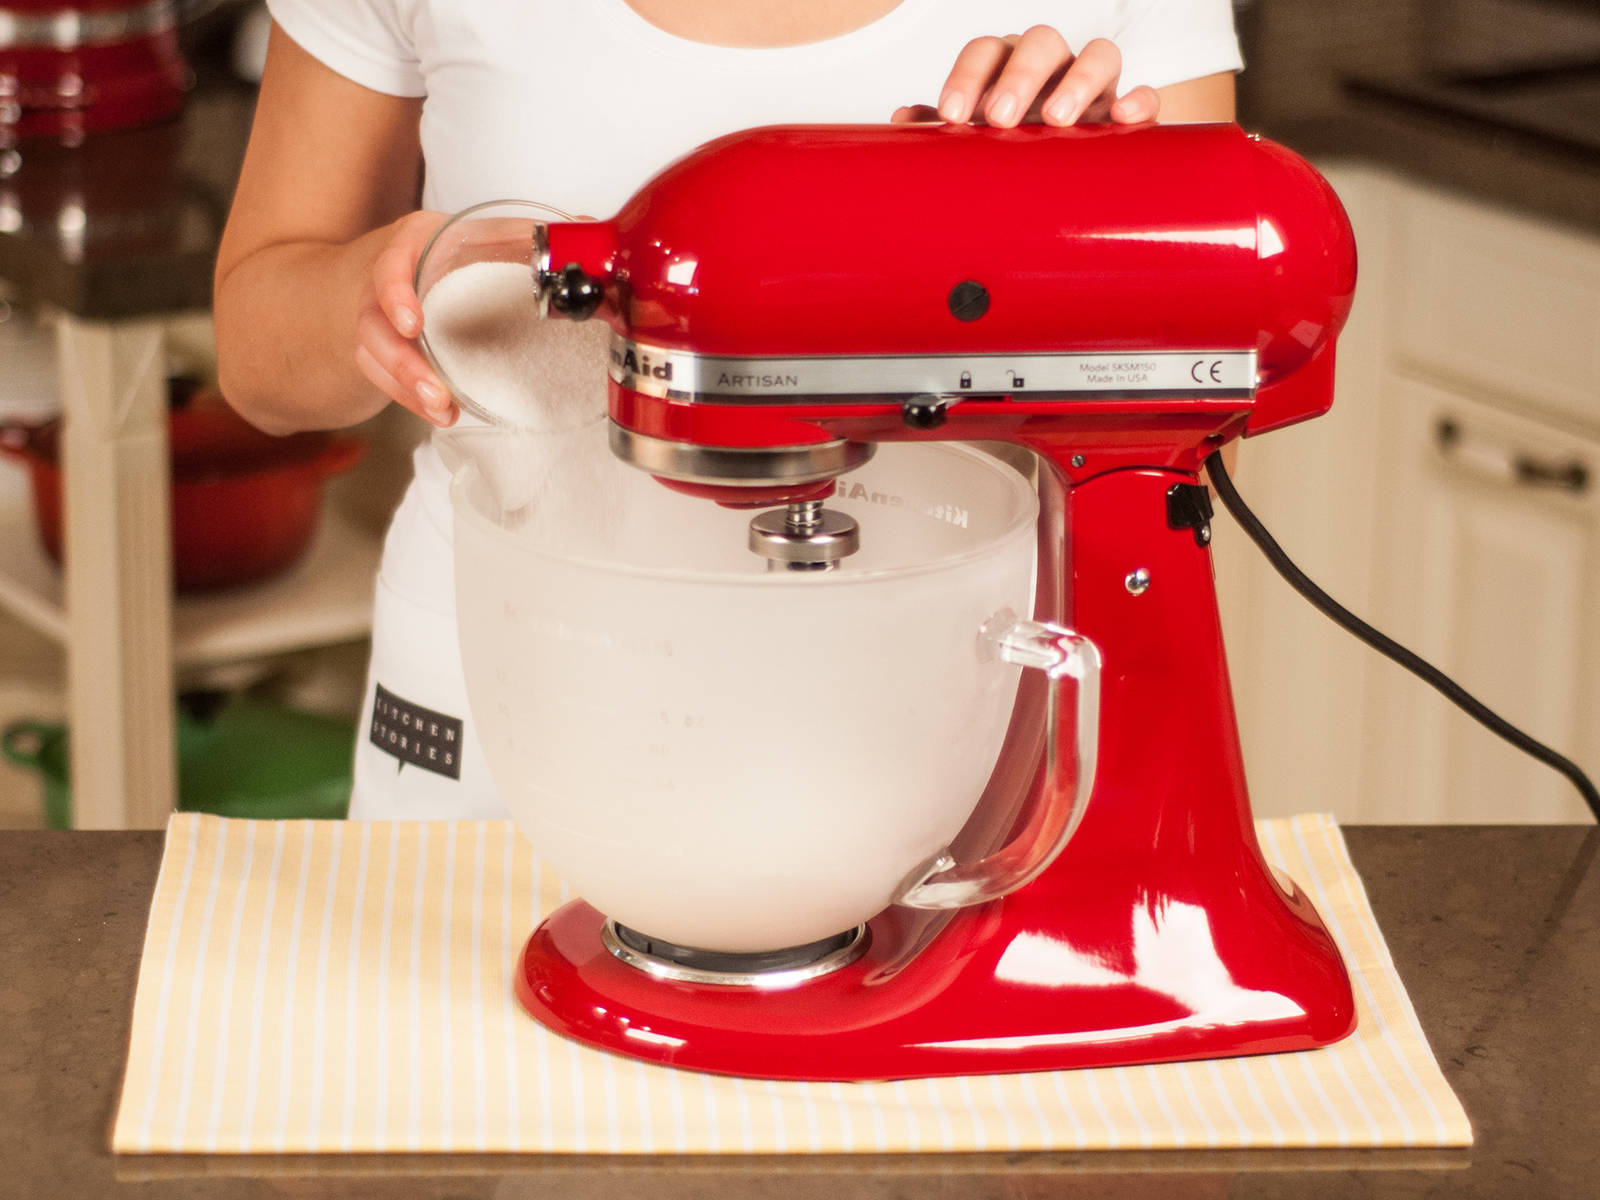 With a standing mixer or a hand mixer beat egg whites until stiff. As soon as they begin to foam, gradually add sugar. The bowl and the beater should be free from any kind of grease to create the desired consistency.